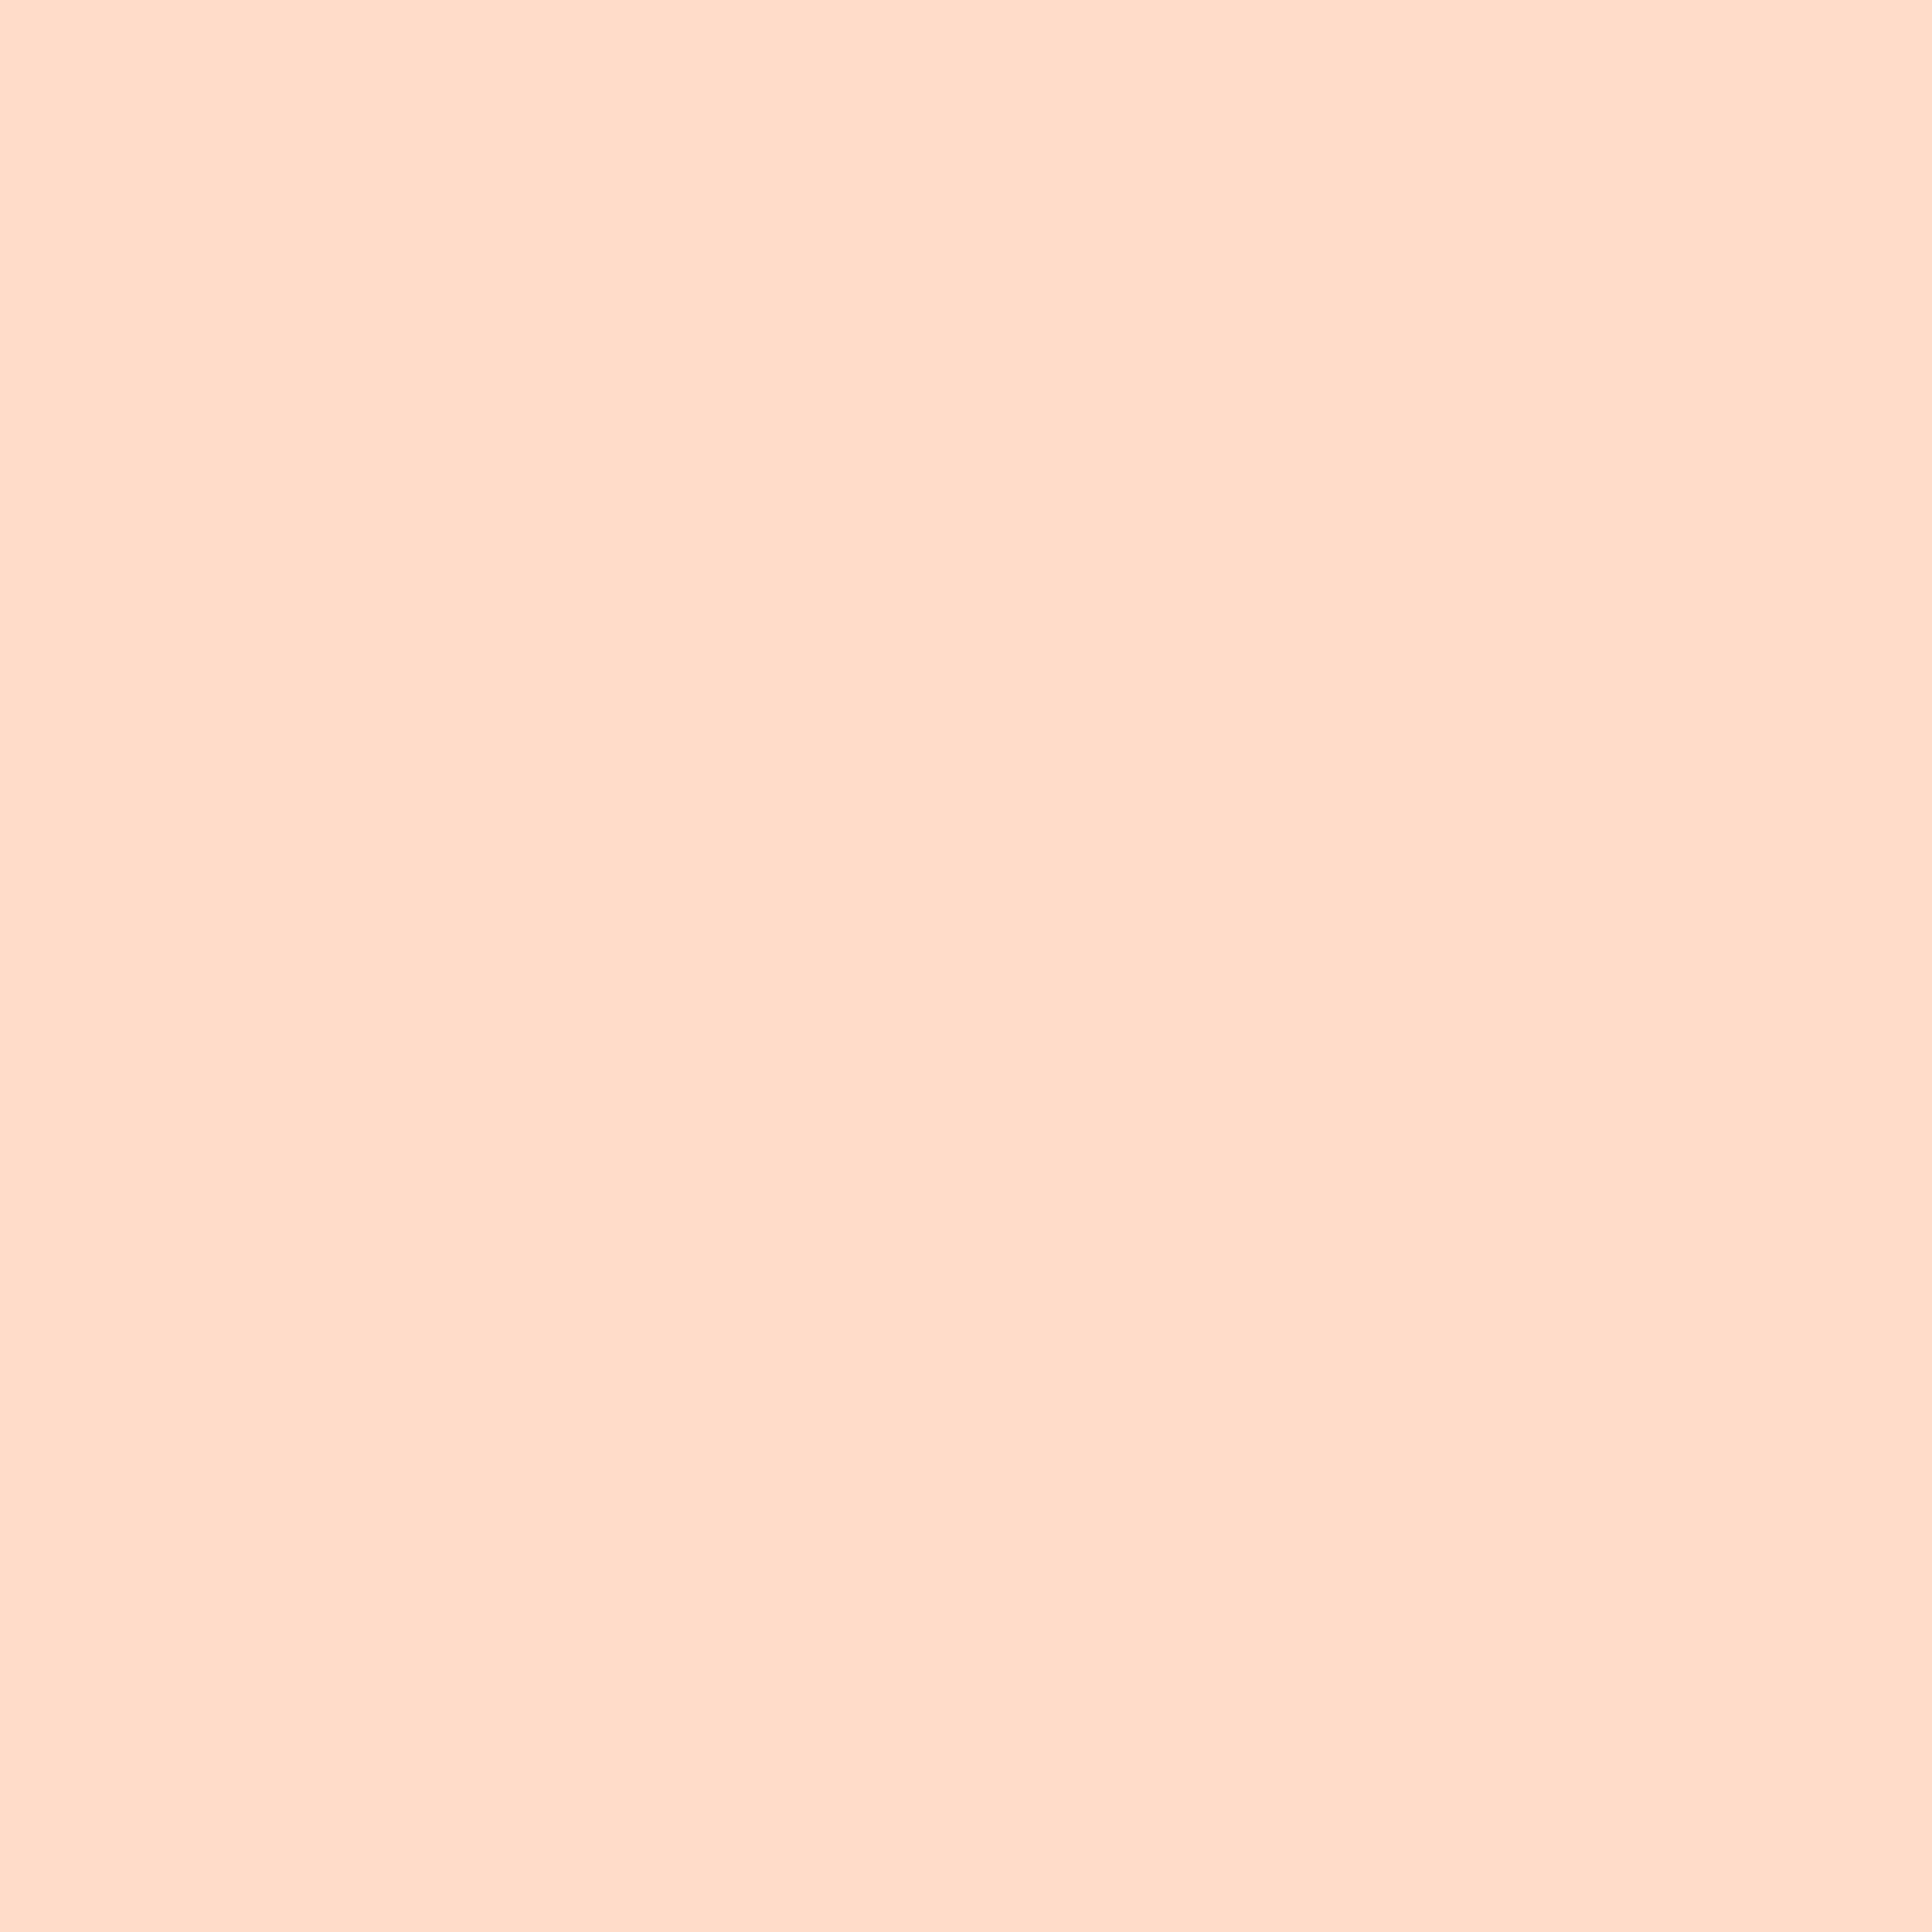 3600x3600 Unbleached Silk Solid Color Background